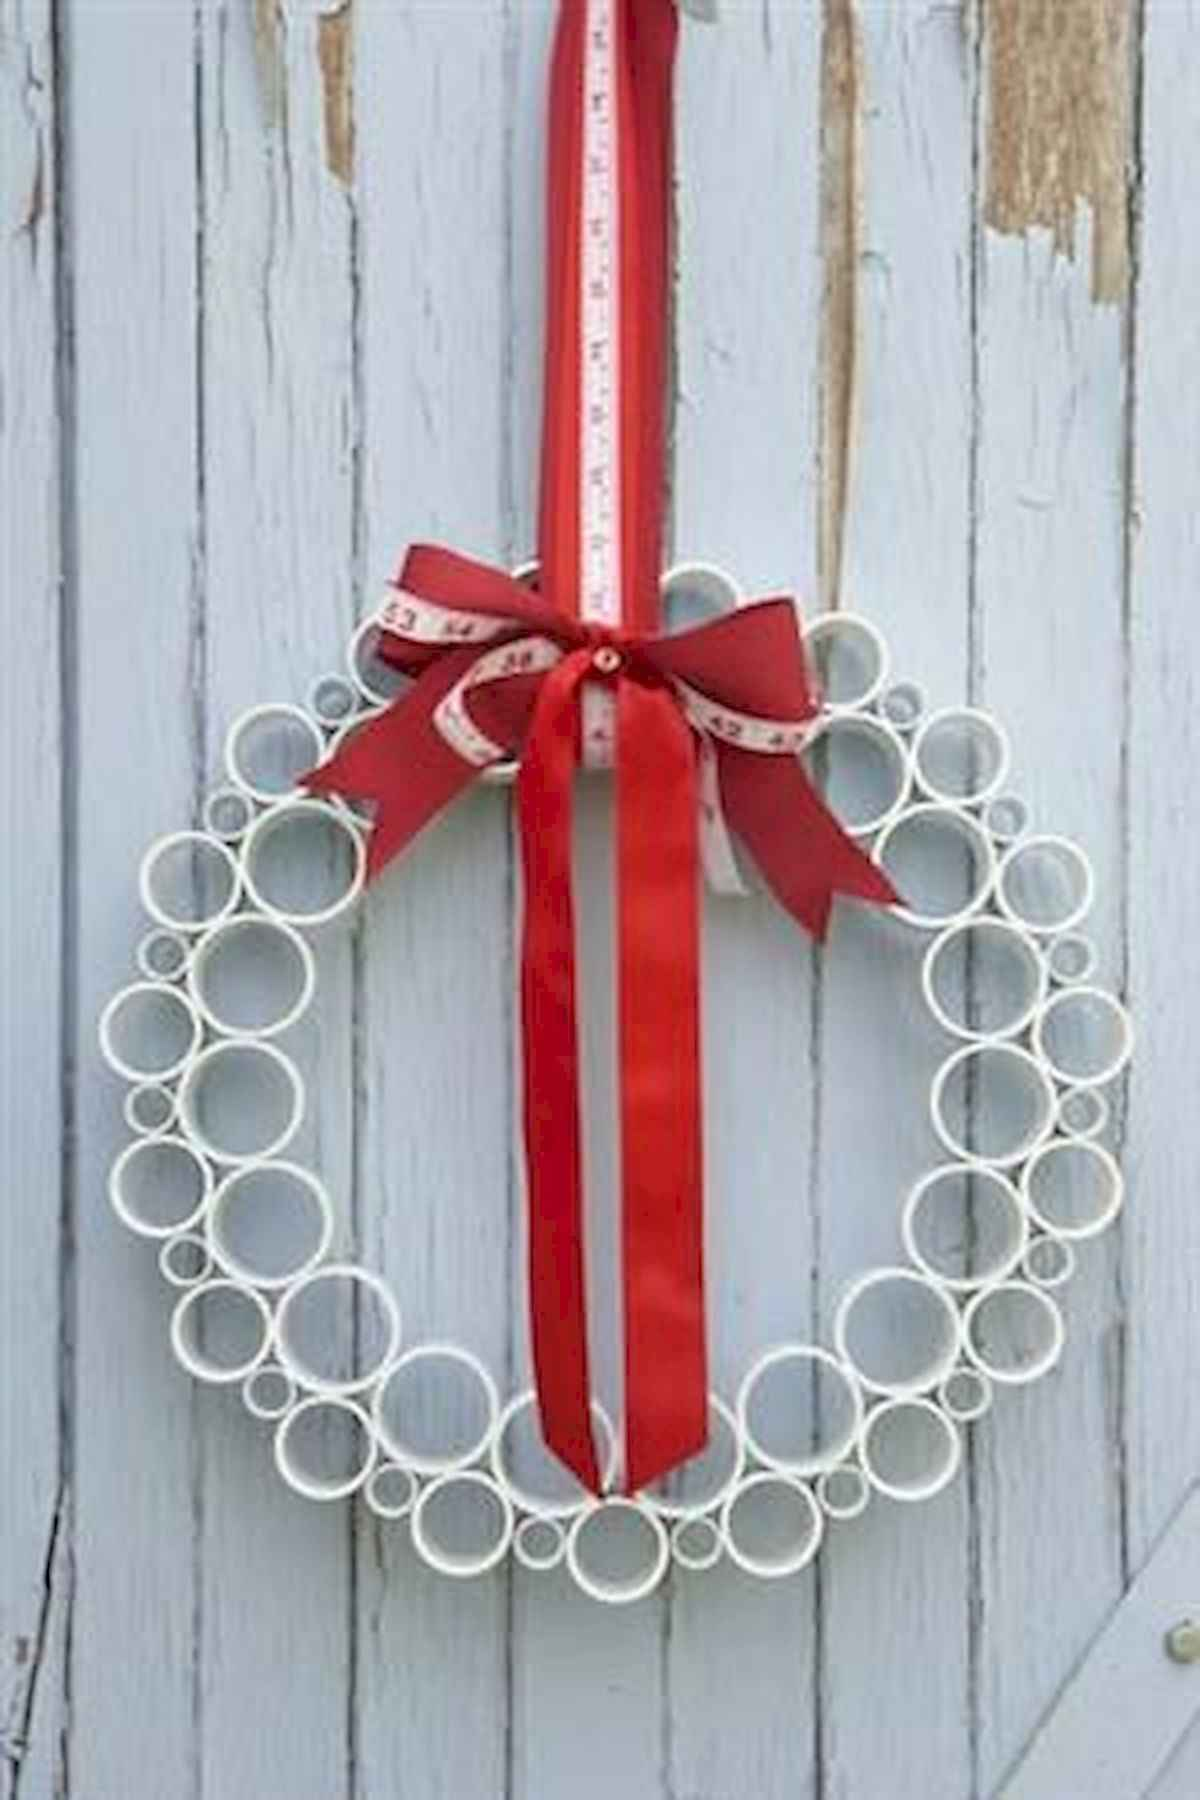 60 awesome wall art christmas ideas decorations (21)